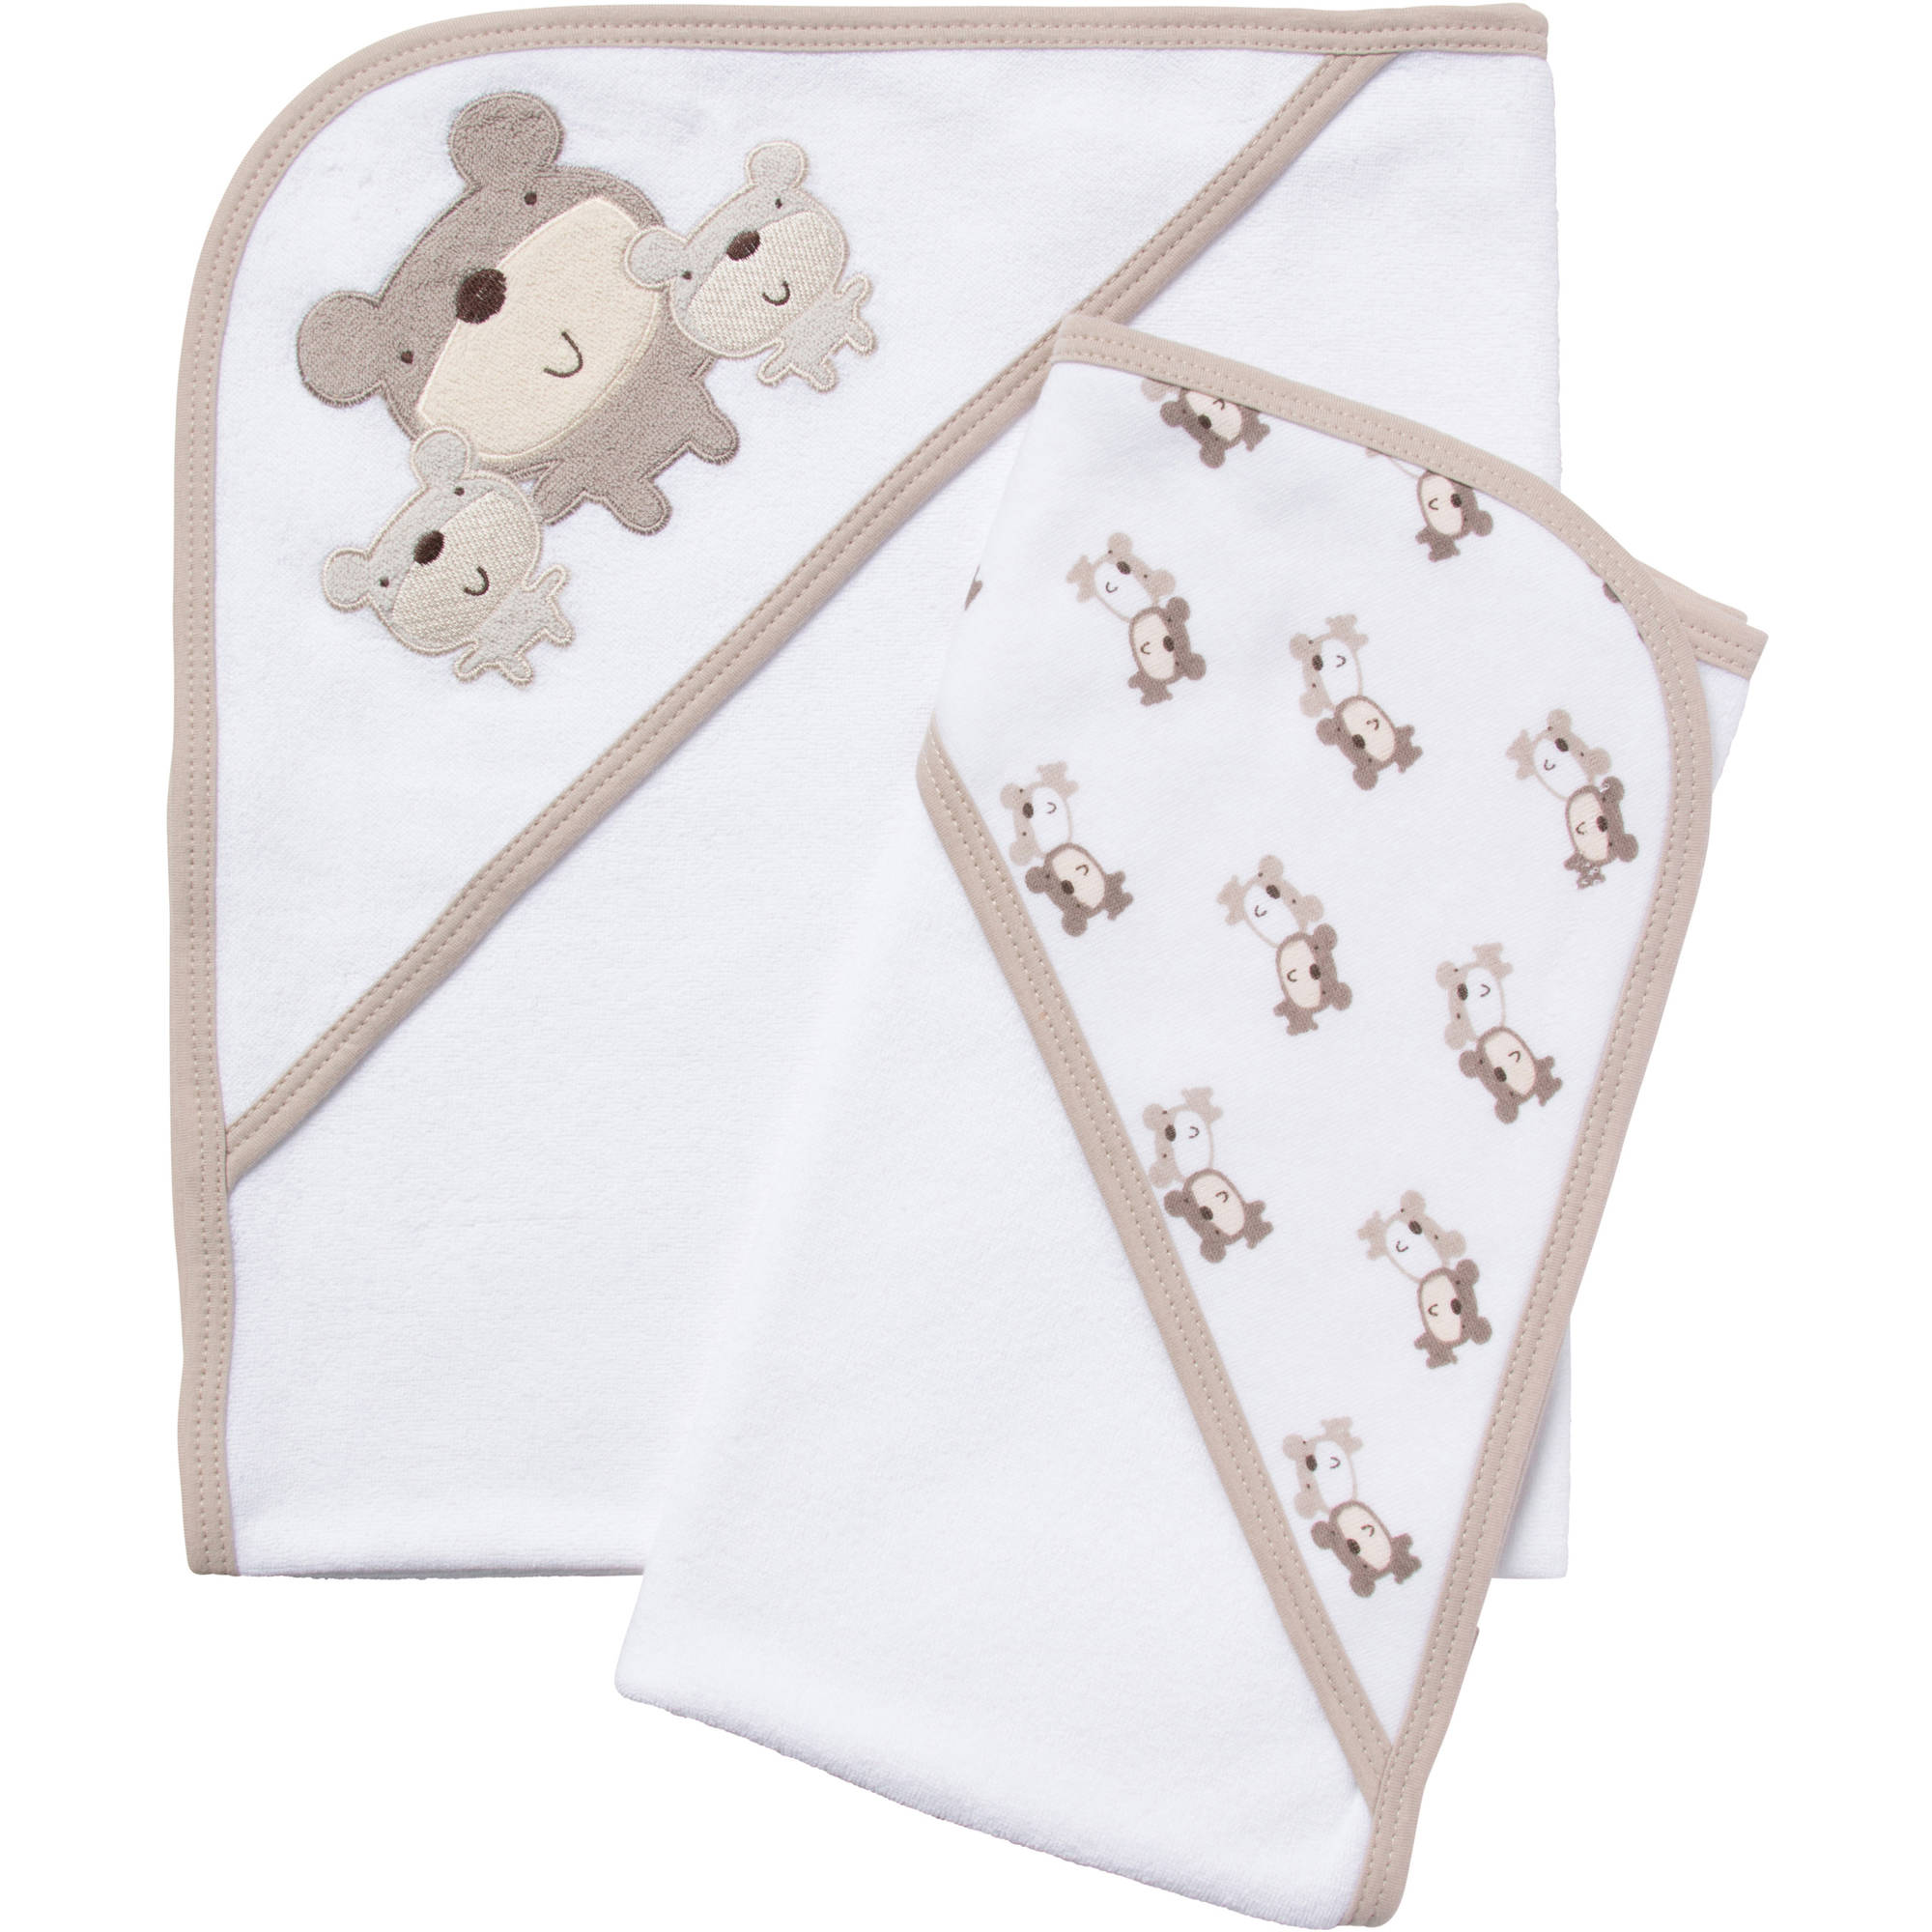 Gerber Newborn Baby Neutral Terry Hooded Bath Towels, 2-Pack